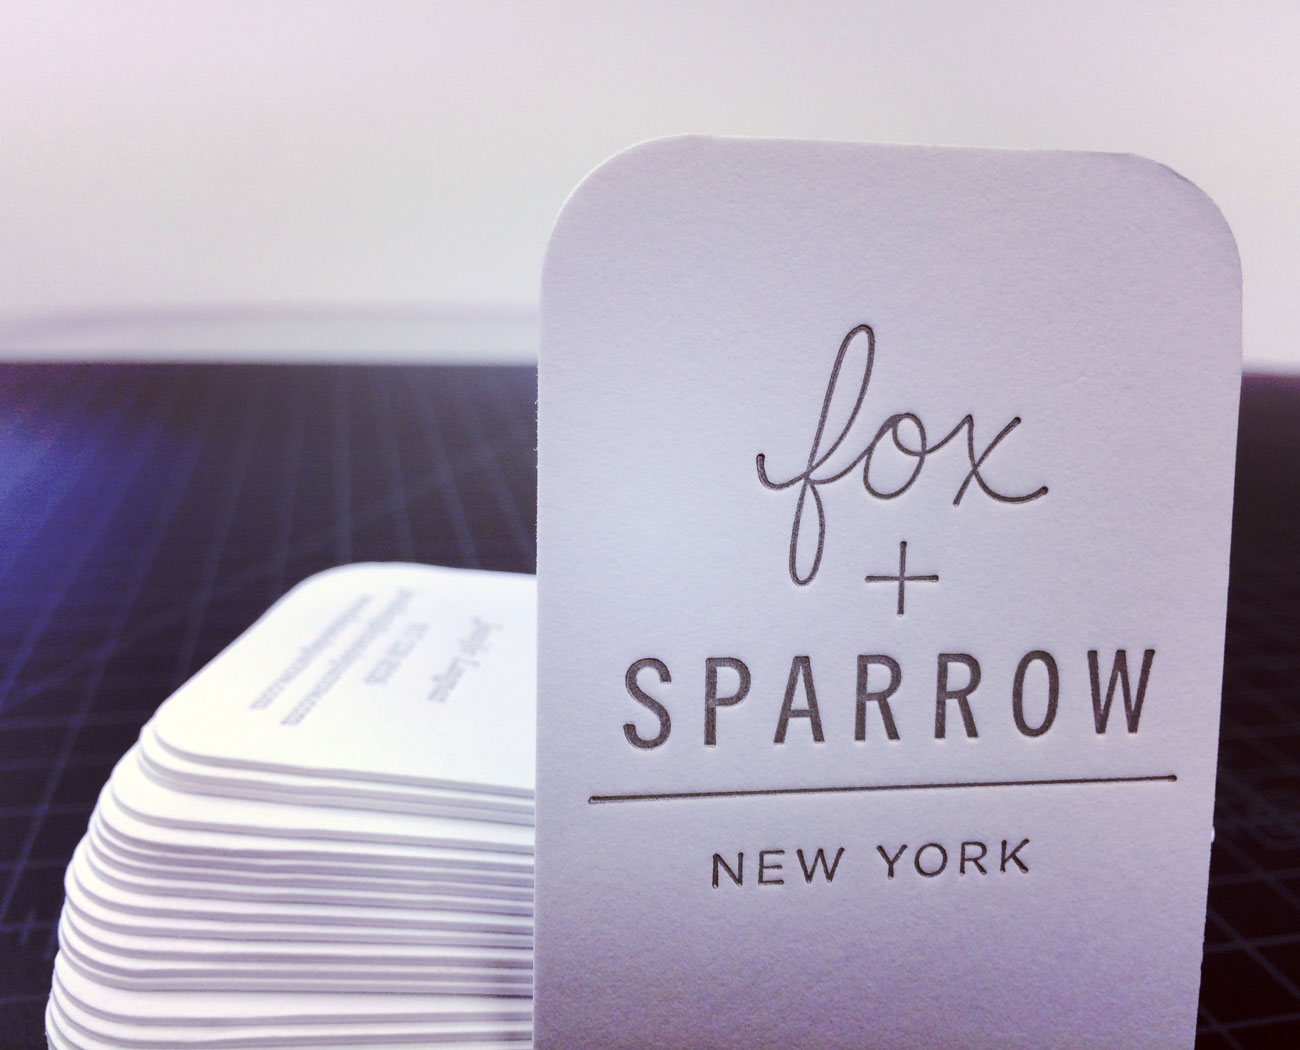 Fox and sparrow letterpress rounded corner business cards remco fox sparrow 184lb letterpress round corner business cards reheart Image collections